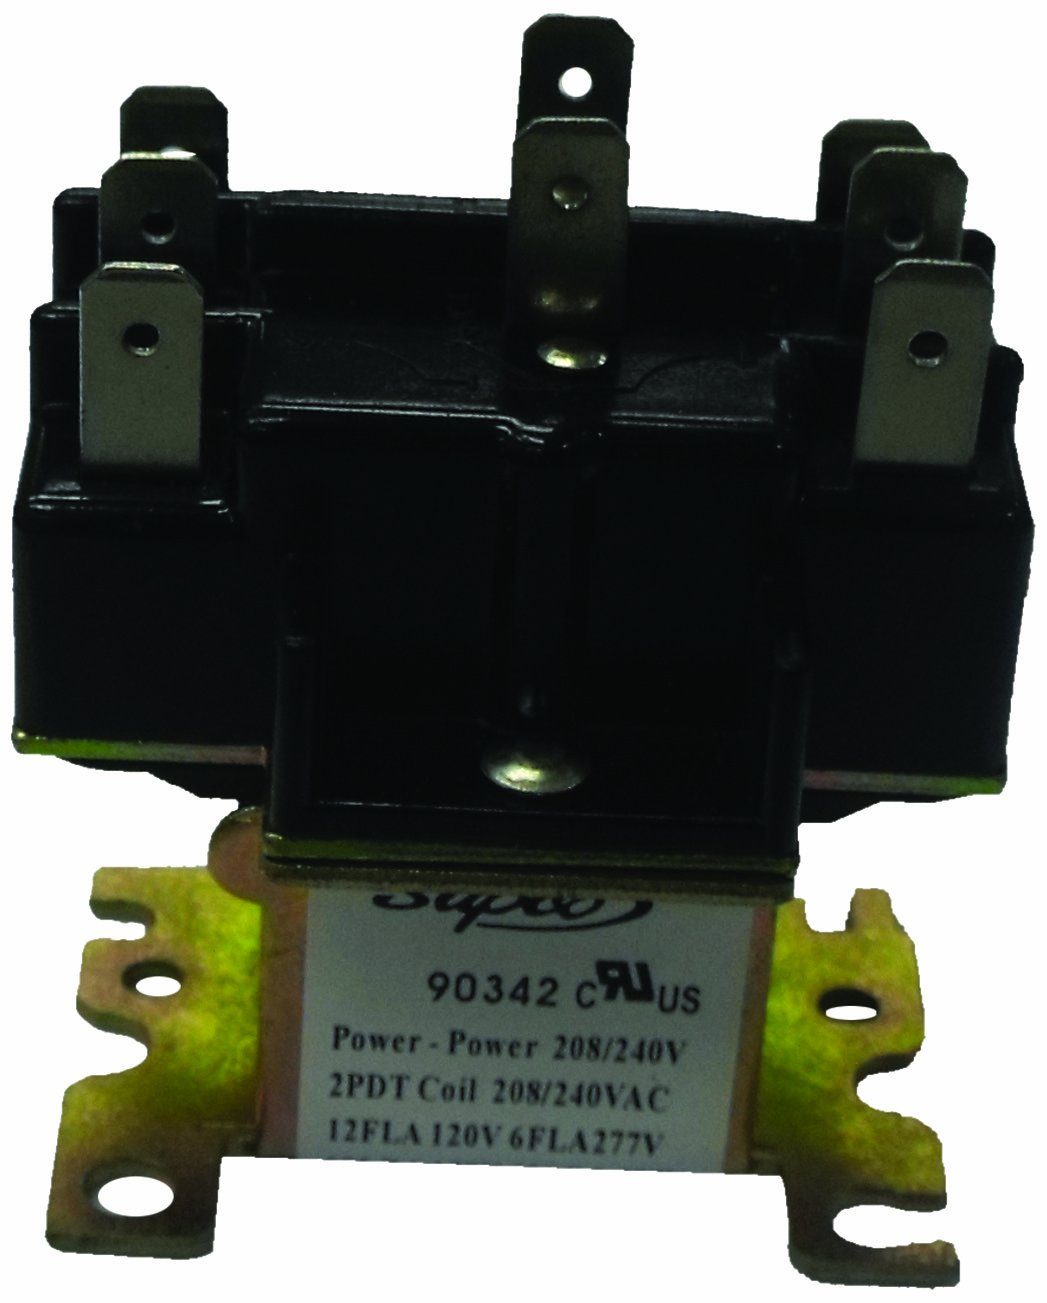 Supco 90341 General Purpose Switching  Relay, 110/120 V Coil Voltage, Double Pole Double Throw Contacts